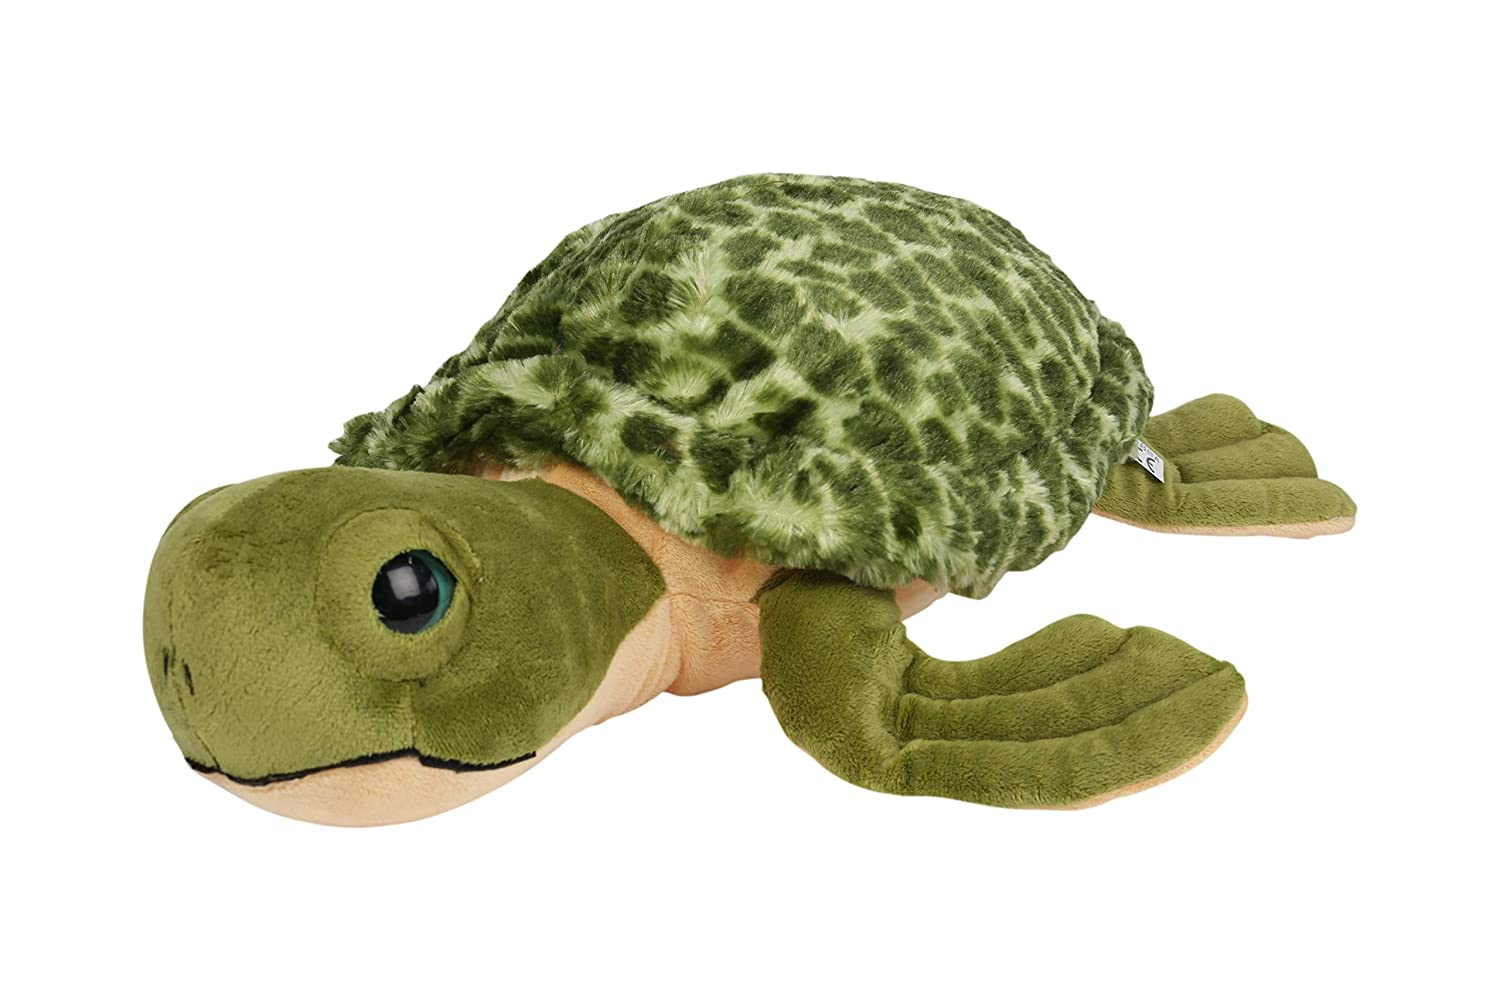 The Petting Zoo Giant Sea Turtle Plush Stuffed Animal Sealife Plush for Turtle Toy or Turtle Pillow Pet 22 inches